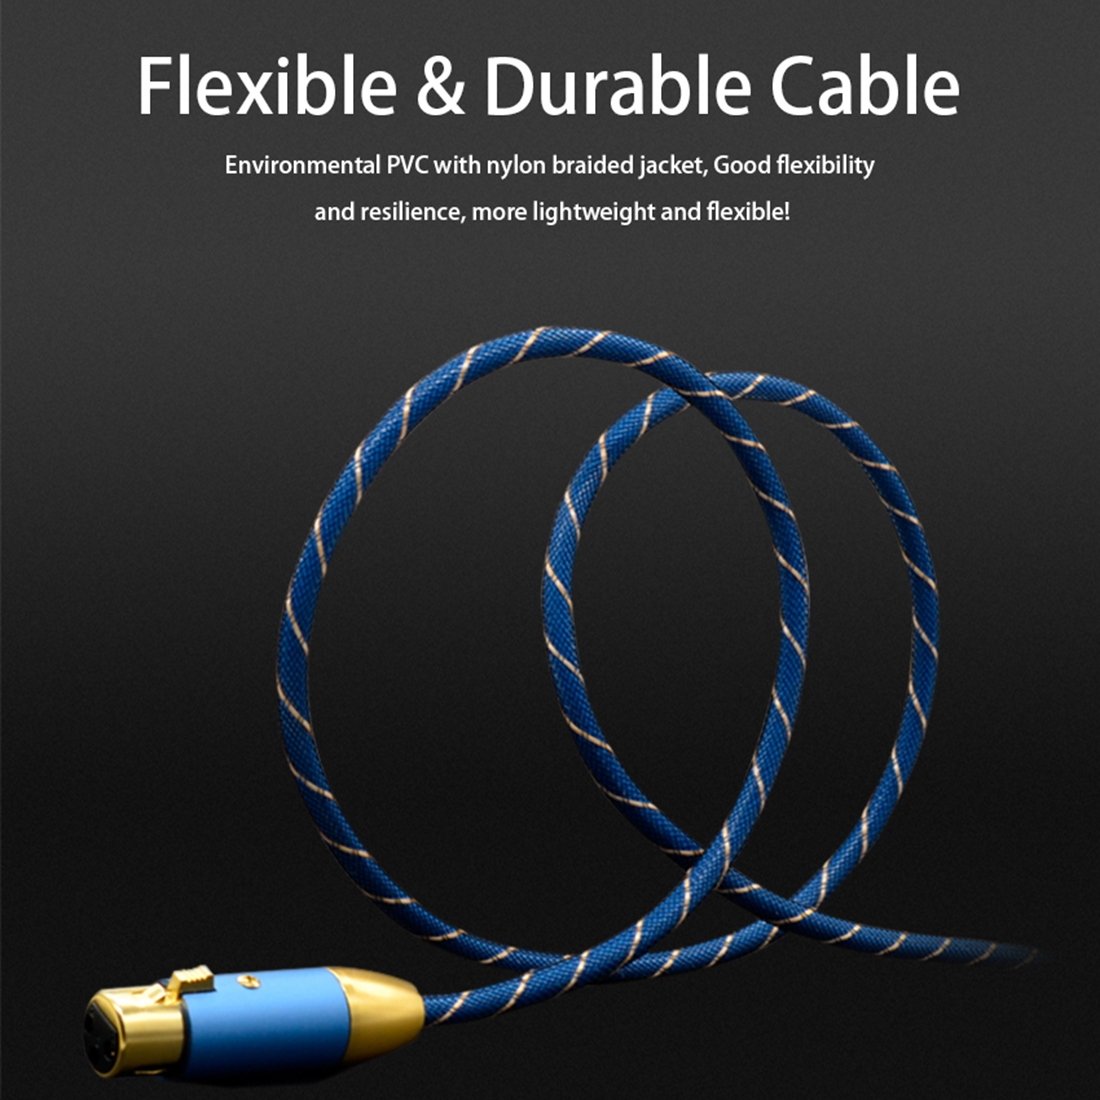 EMK XLR Male to Female Gold-plated Plug Grid Nylon Braided Cannon Audio Cable for XLR Jack Devices, Length: 2m (Blue)